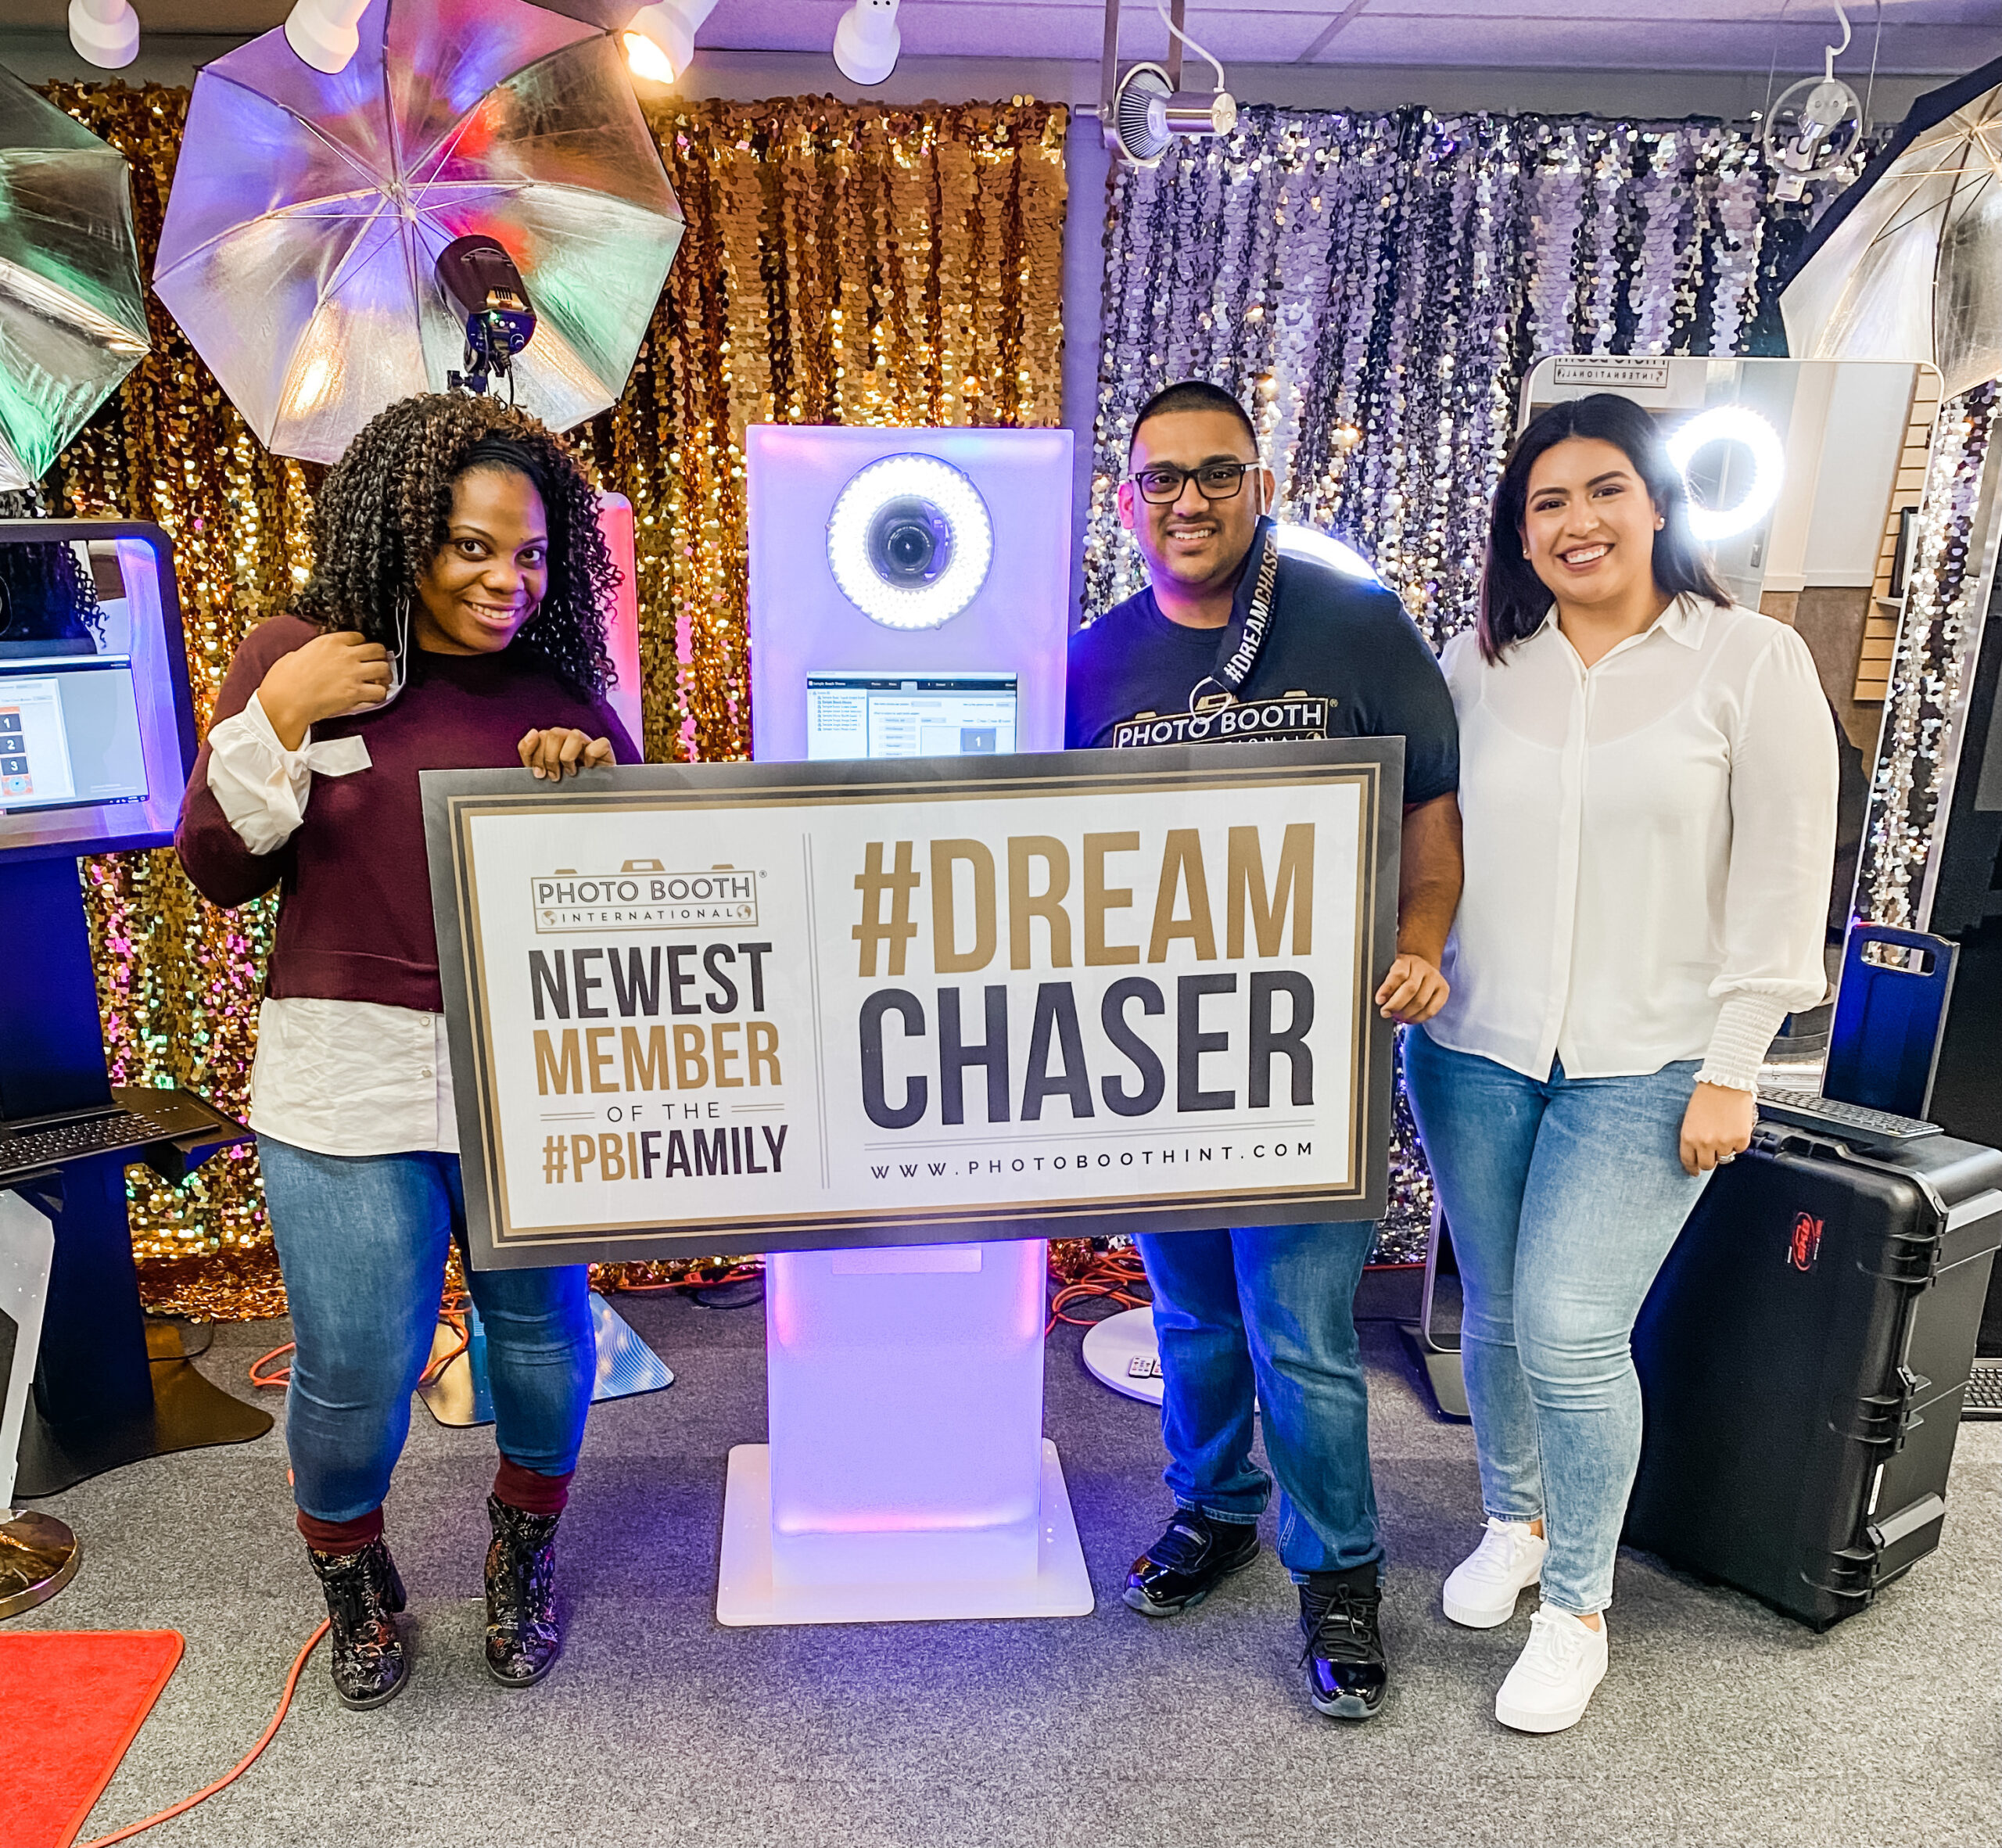 Photo Booth International Makes List of Fastest-Growing Companies in Texas 6